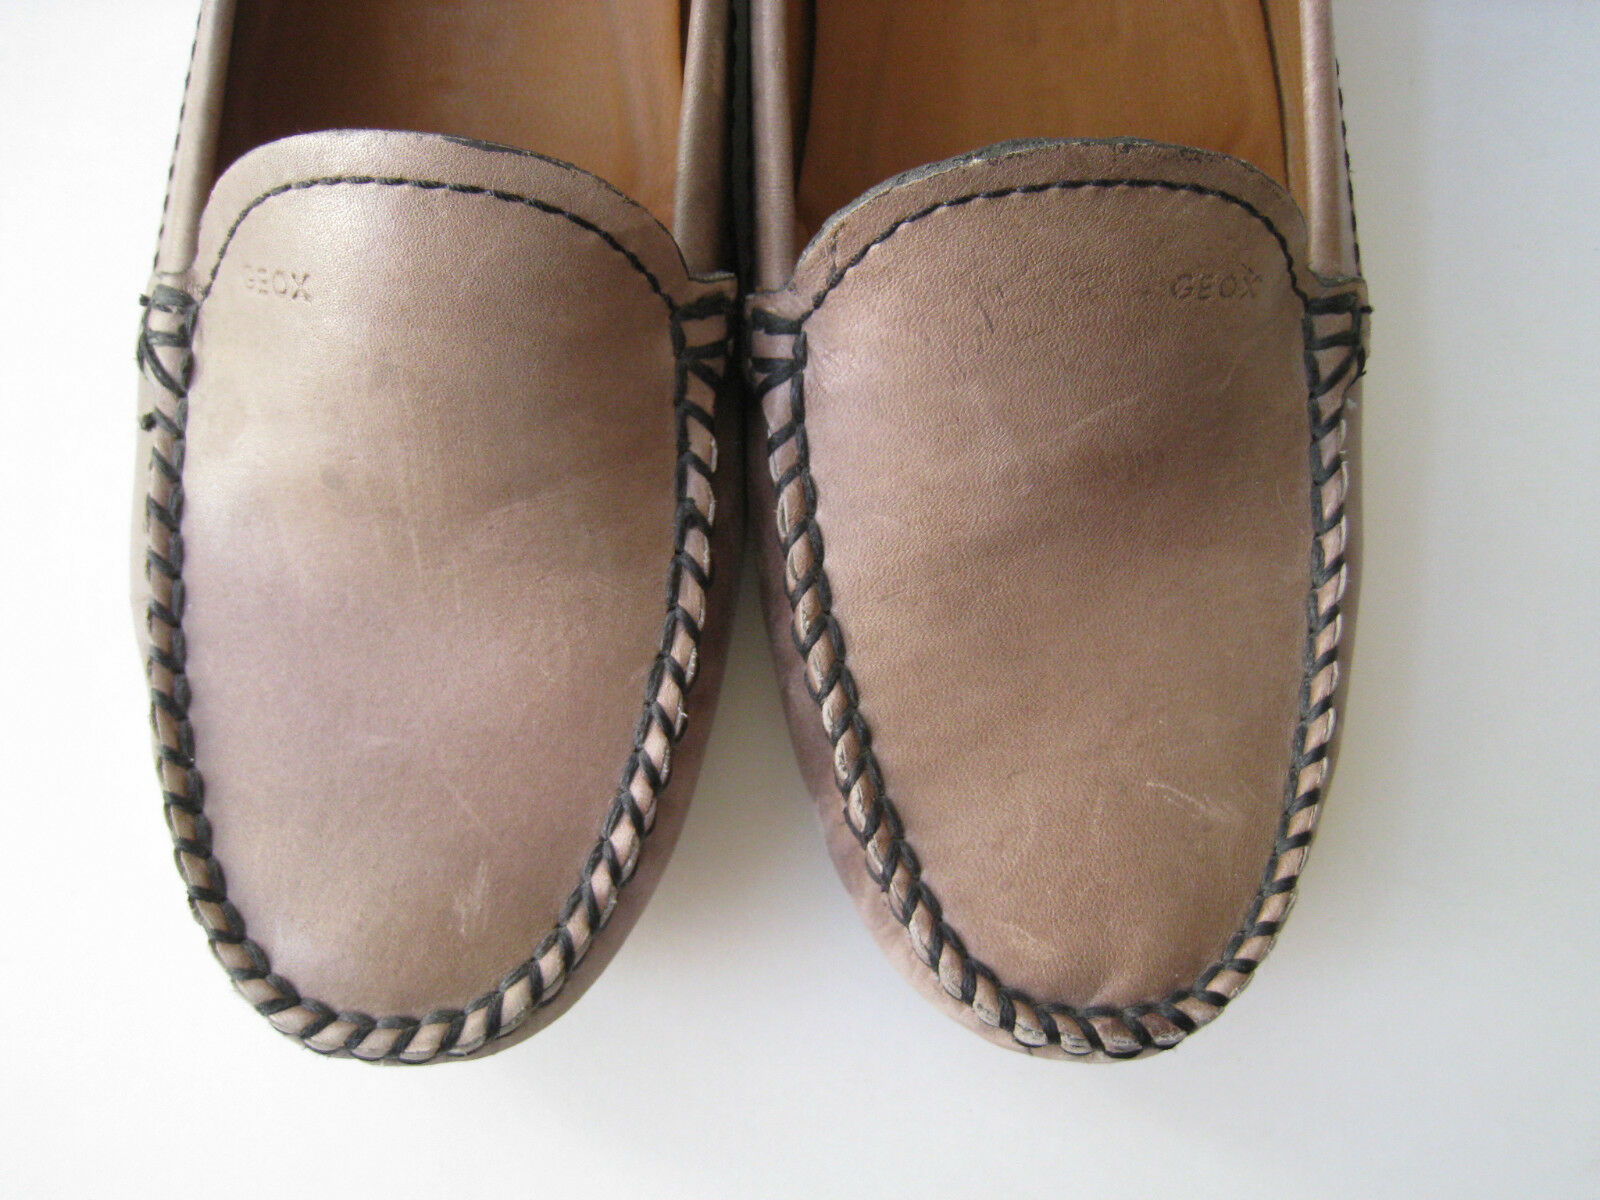 GEOX RESPIRA EUR BROWN LEATHER LOAFERS WOMEN Größe US 9.5 EUR RESPIRA 39.5  COMFORT 44f1e9